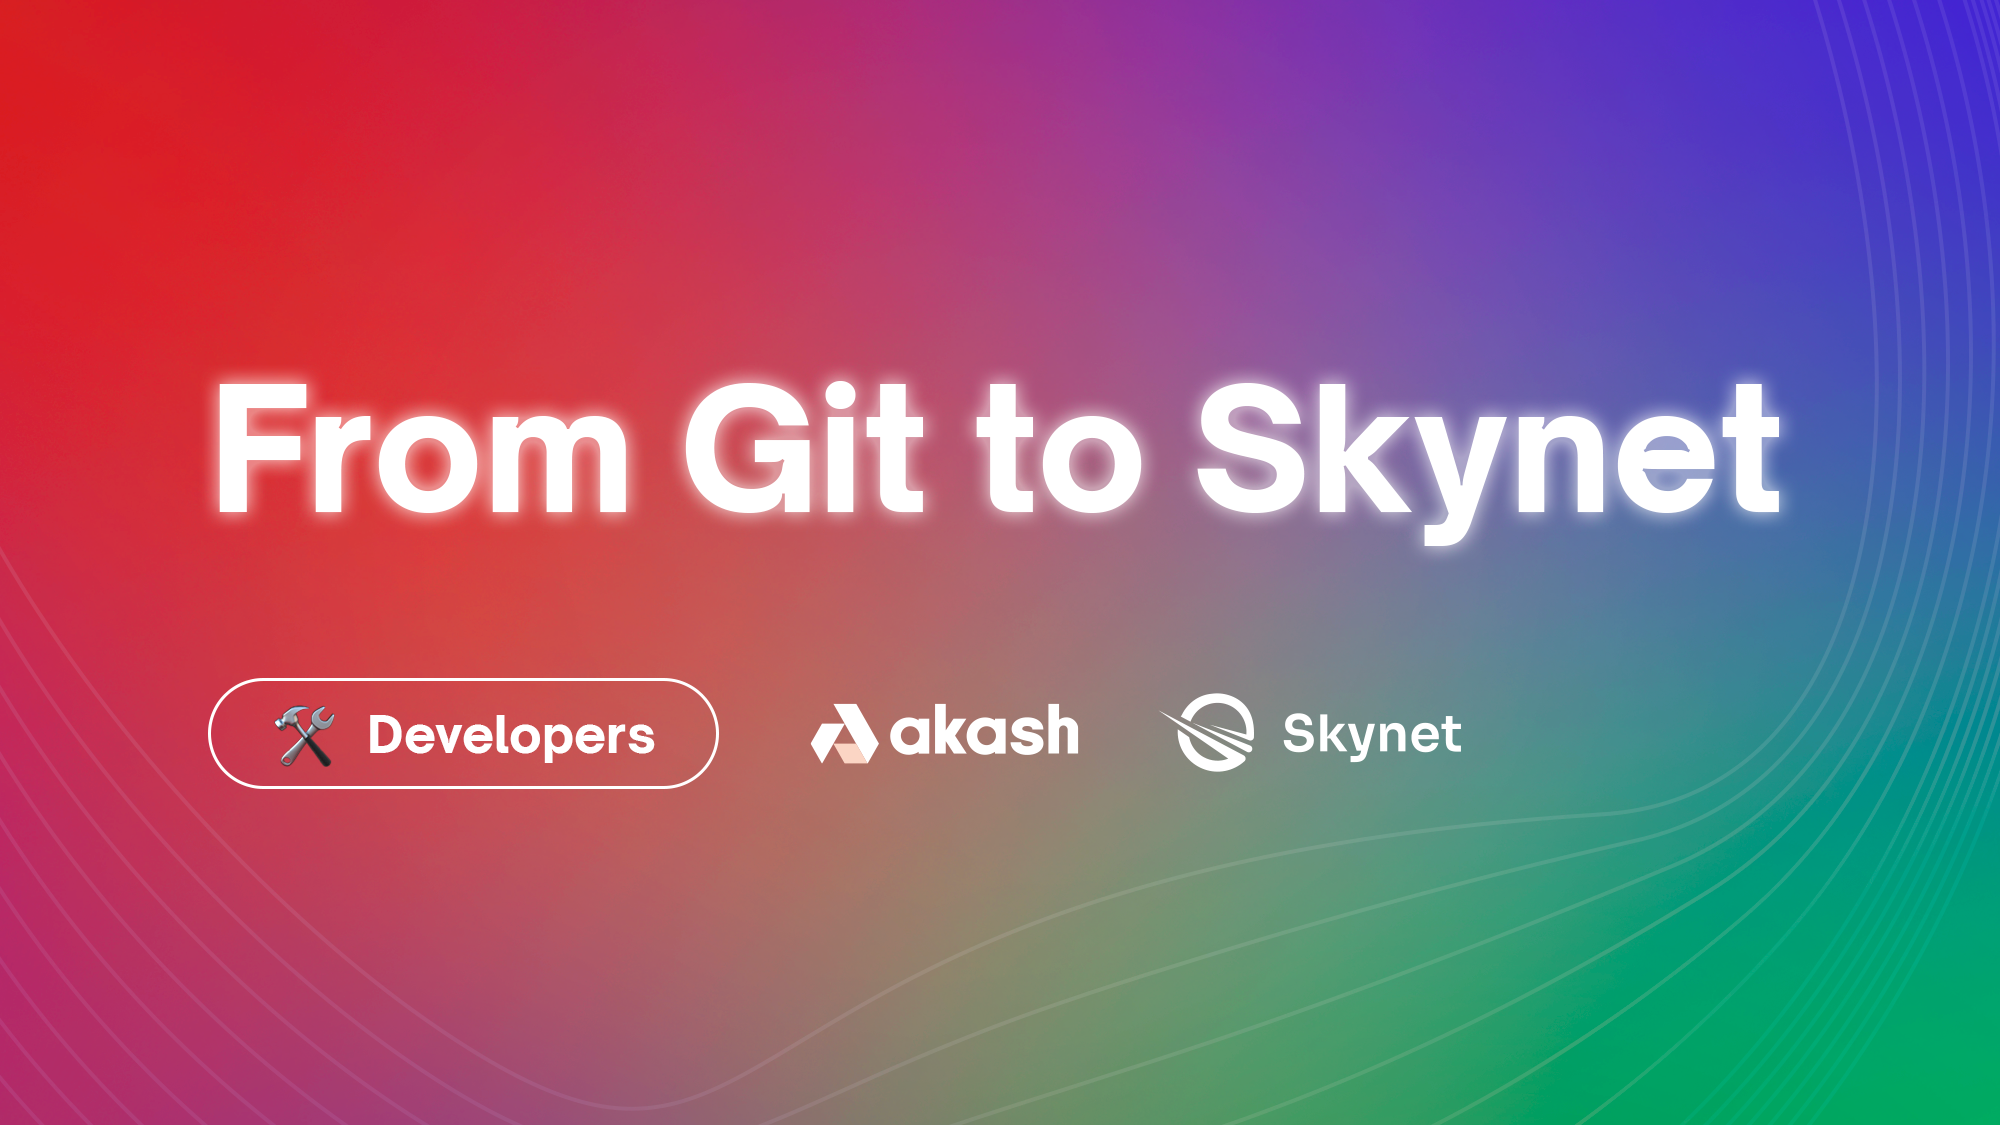 From Git to Skynet: How to Host Large Files on Sia